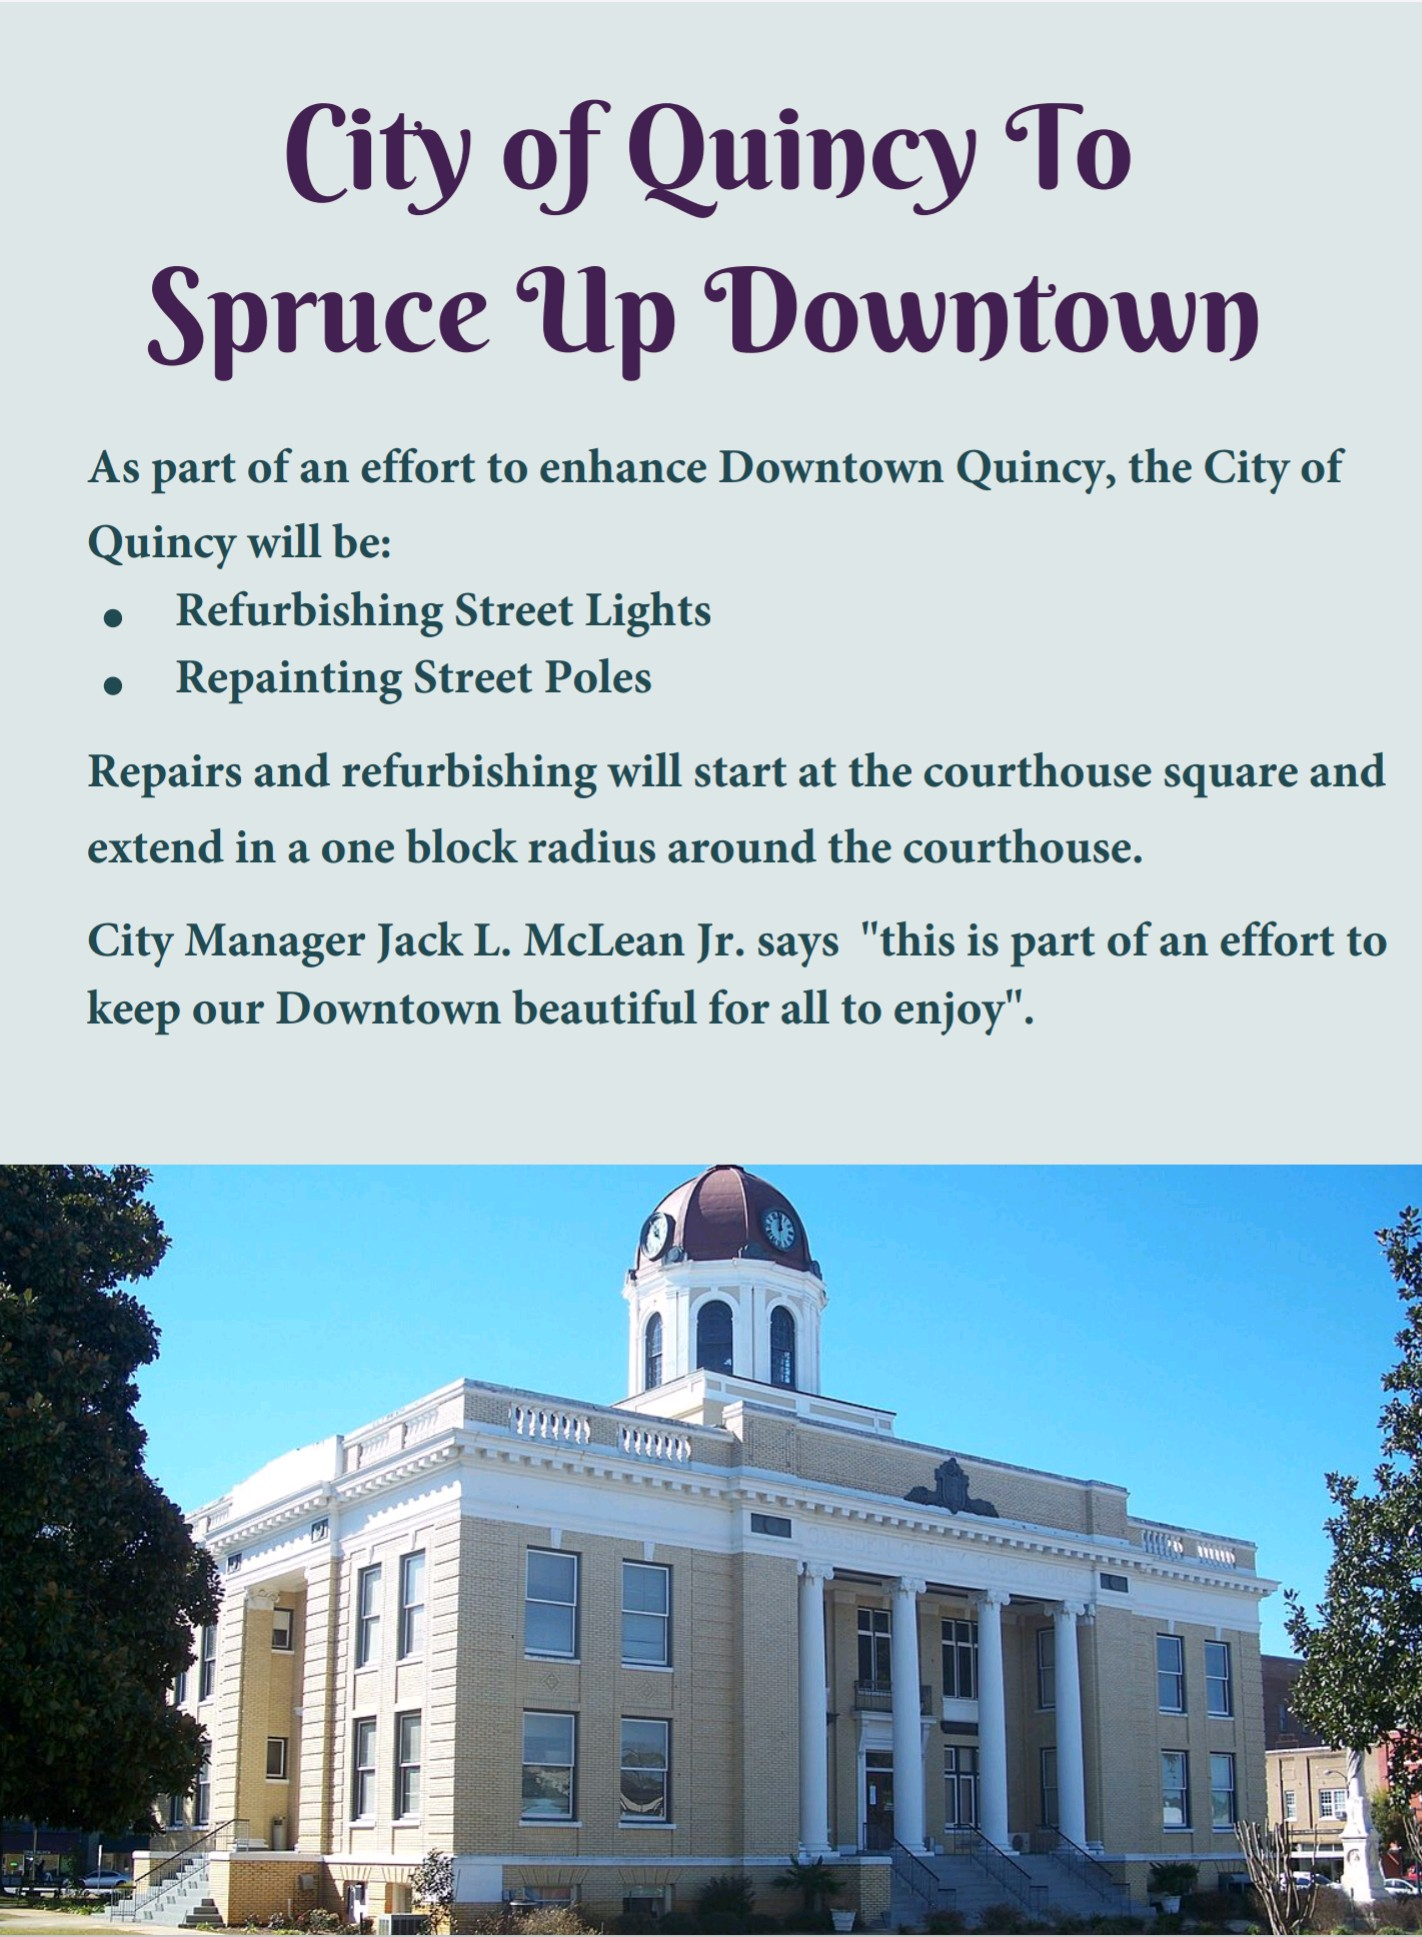 Sprucing Up Downtown